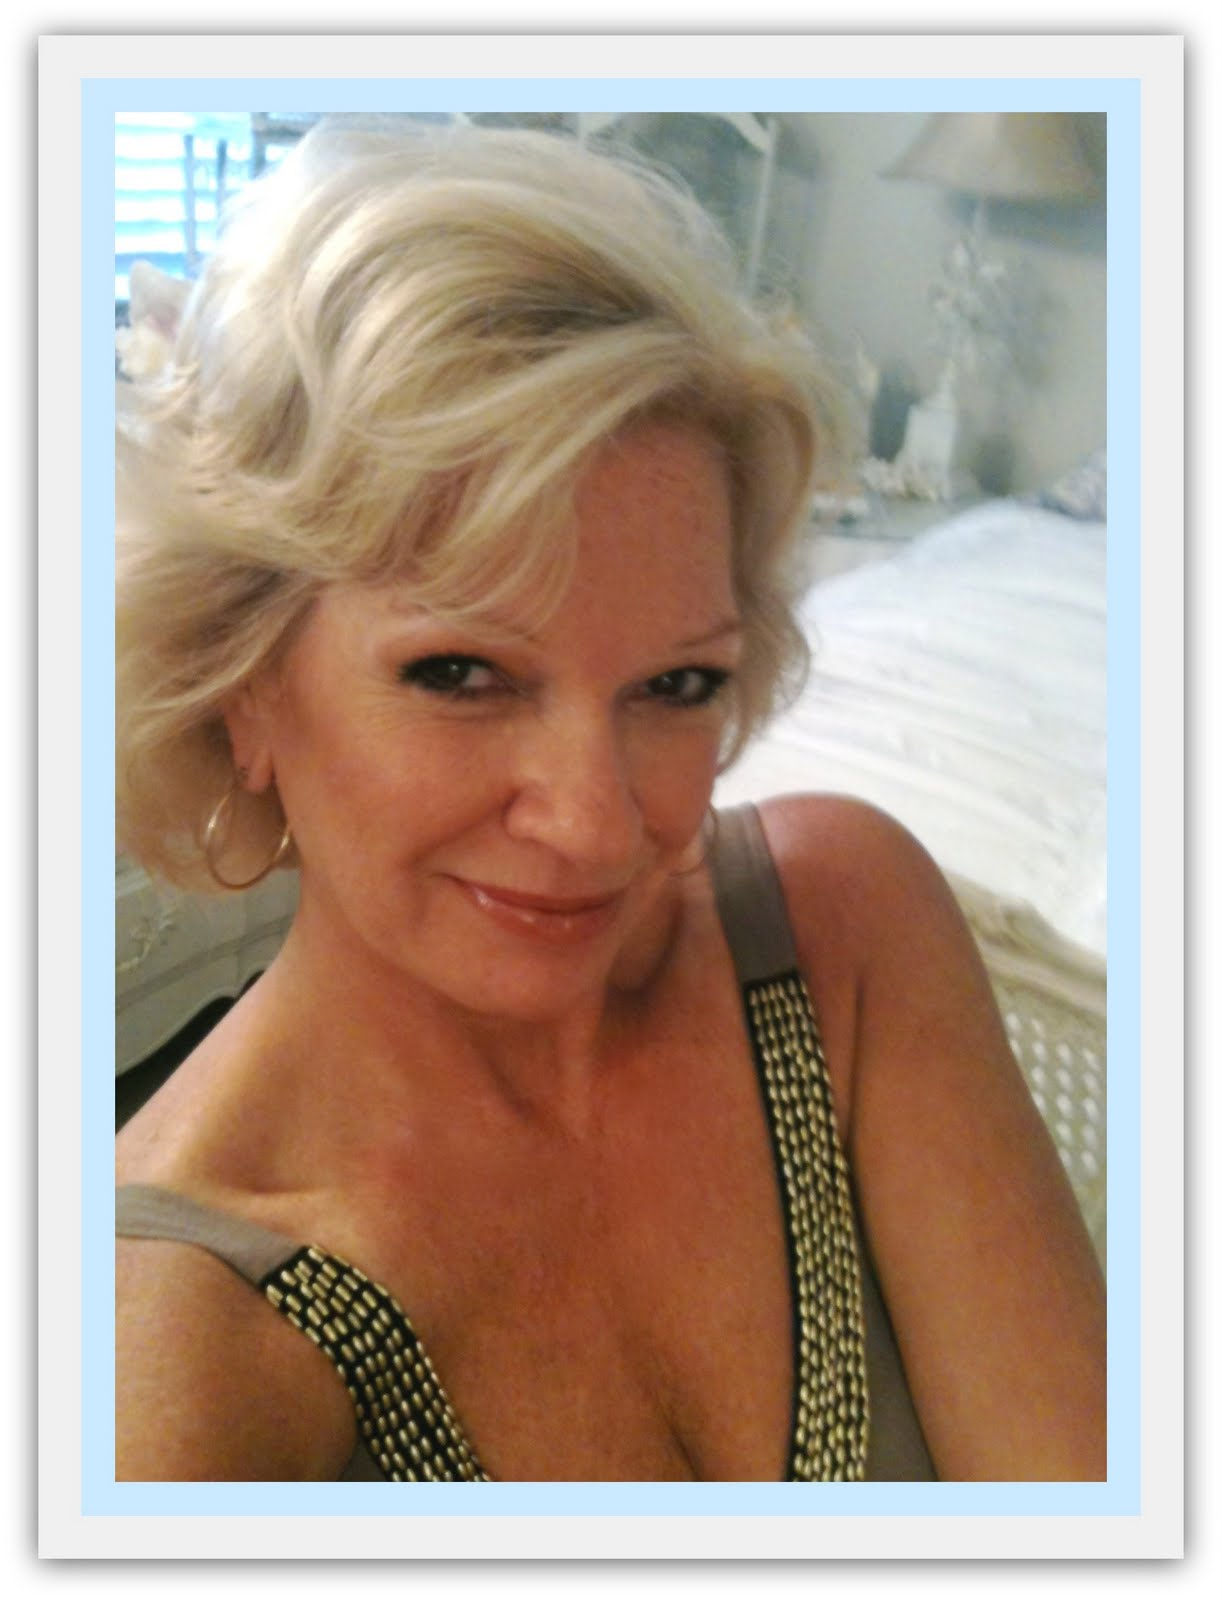 single men over 50 in rosendale Leggy beauty in fullfashioned nylons find this pin and more on dating single women over 50 by agelessfishes com sexy shoes, high heels and stilettos for men and women sexy shoes with.